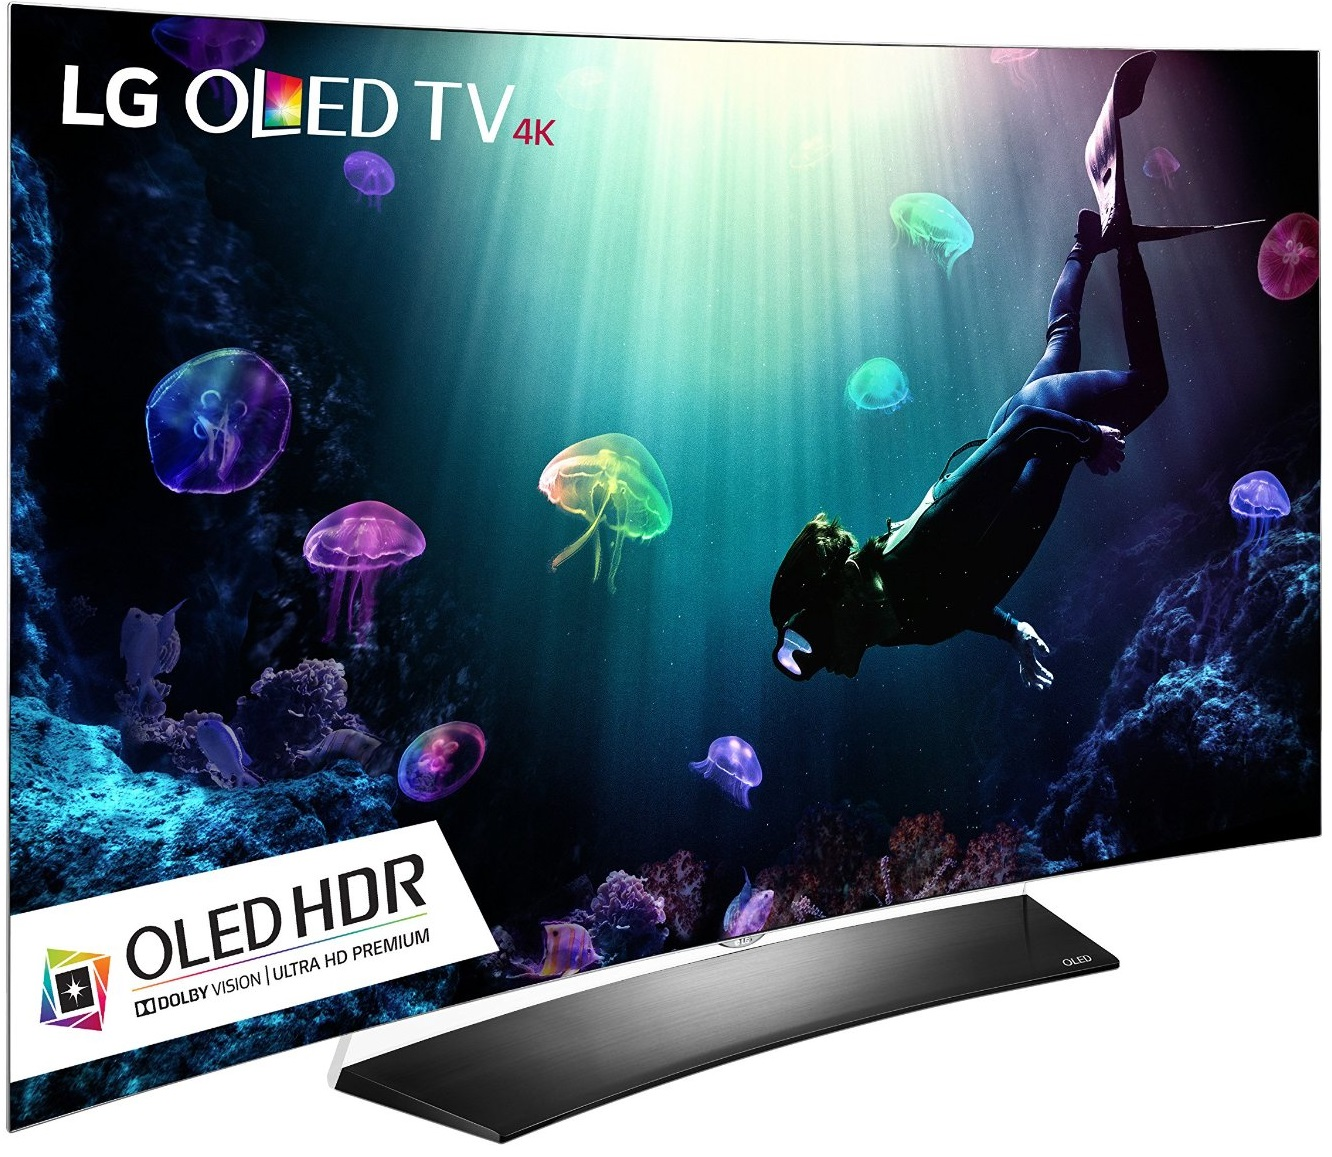 lg oled55c6p vs 55eg9600 comparison comparison of lg 39 s new and old 55 inch curved oled tv. Black Bedroom Furniture Sets. Home Design Ideas